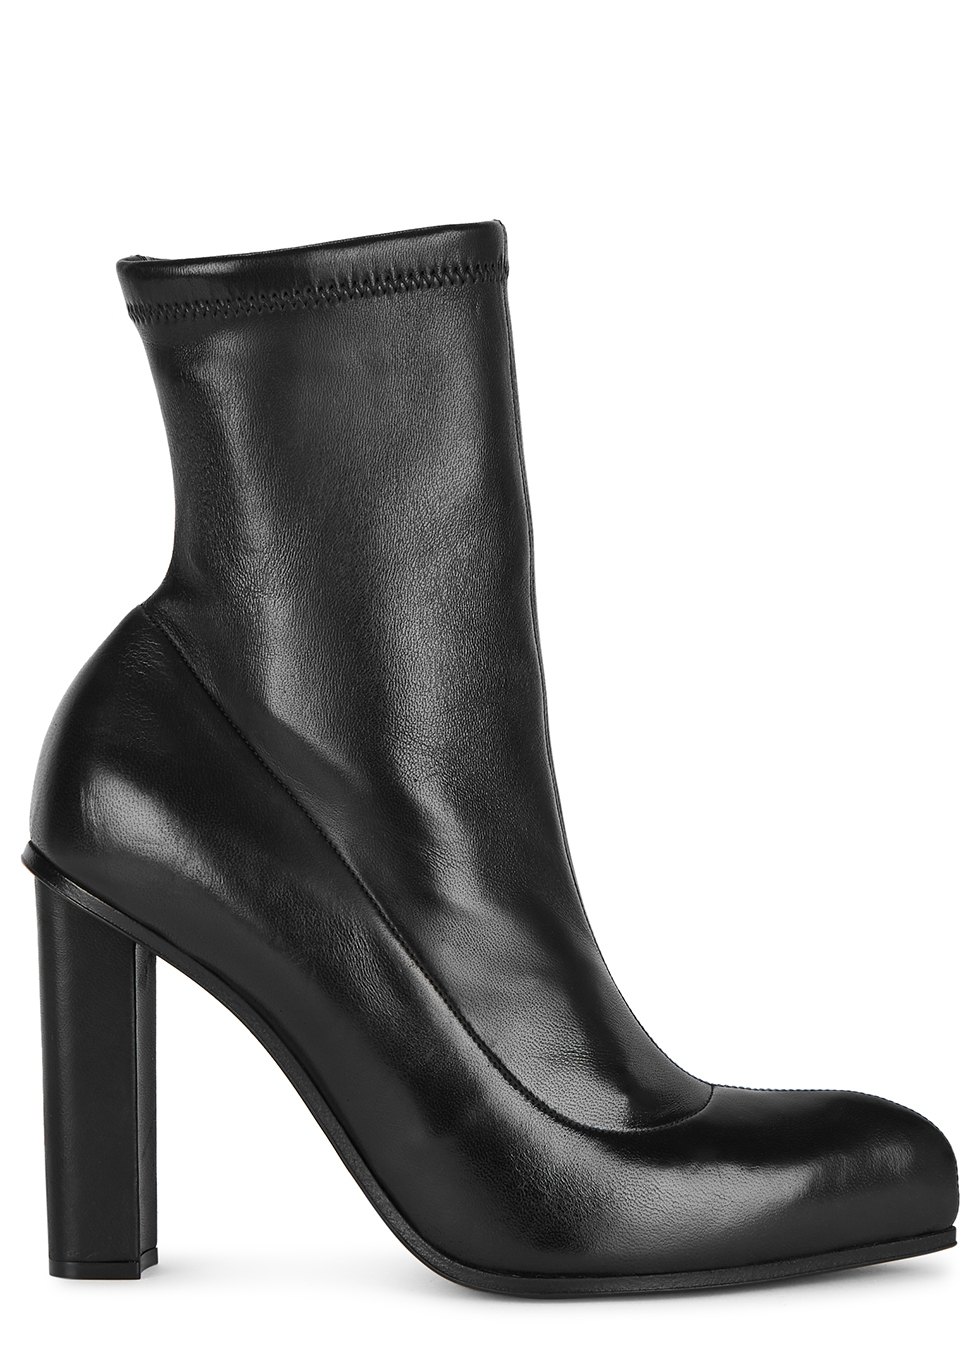 100 black leather ankle boots